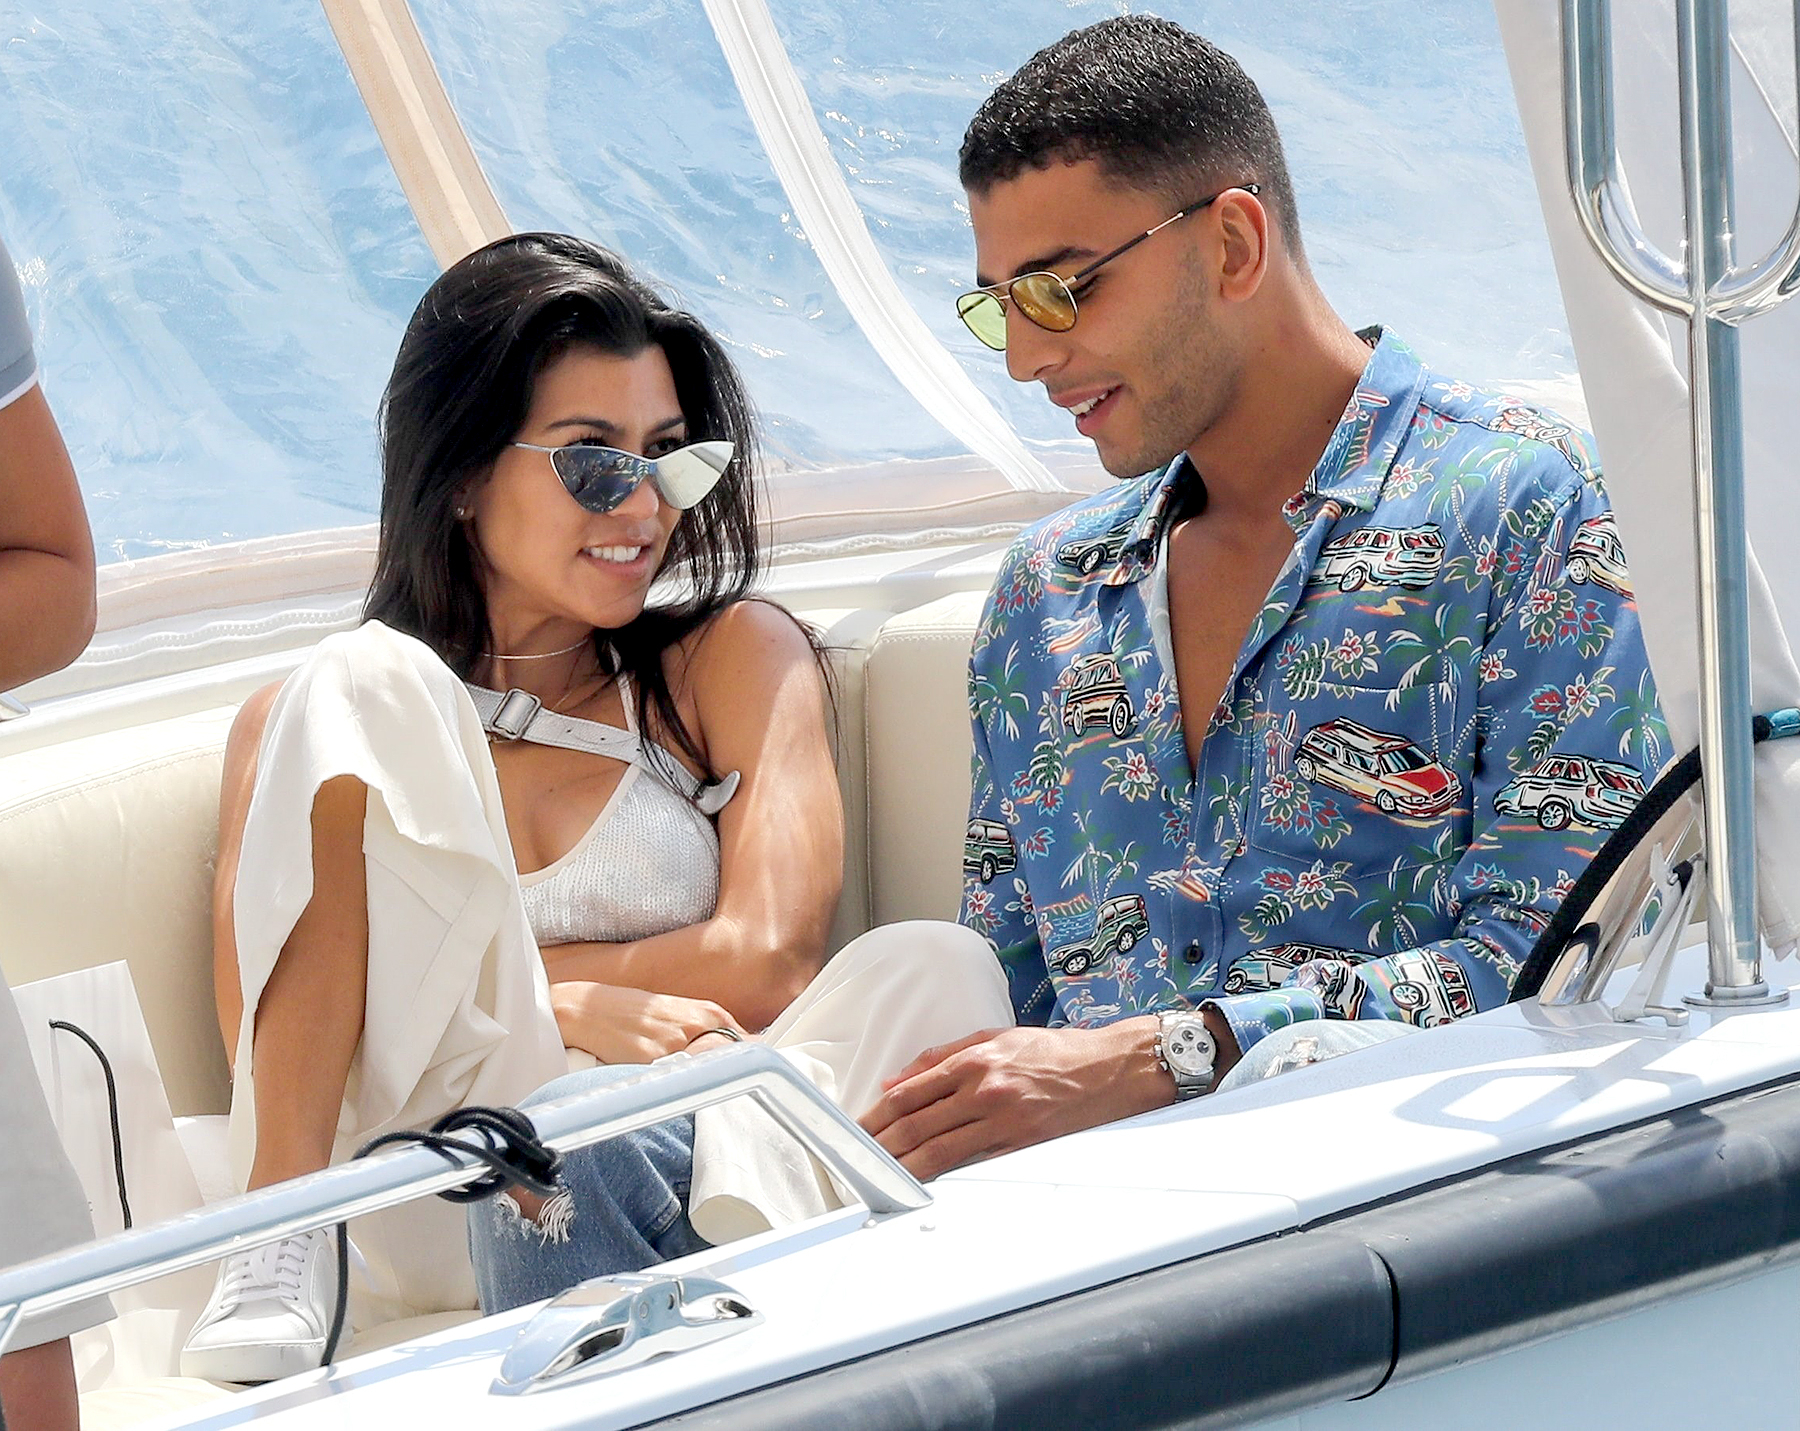 Kourtney Kardashian and Younes Bendjima's Sexy Romance in Pictures in Cannes.